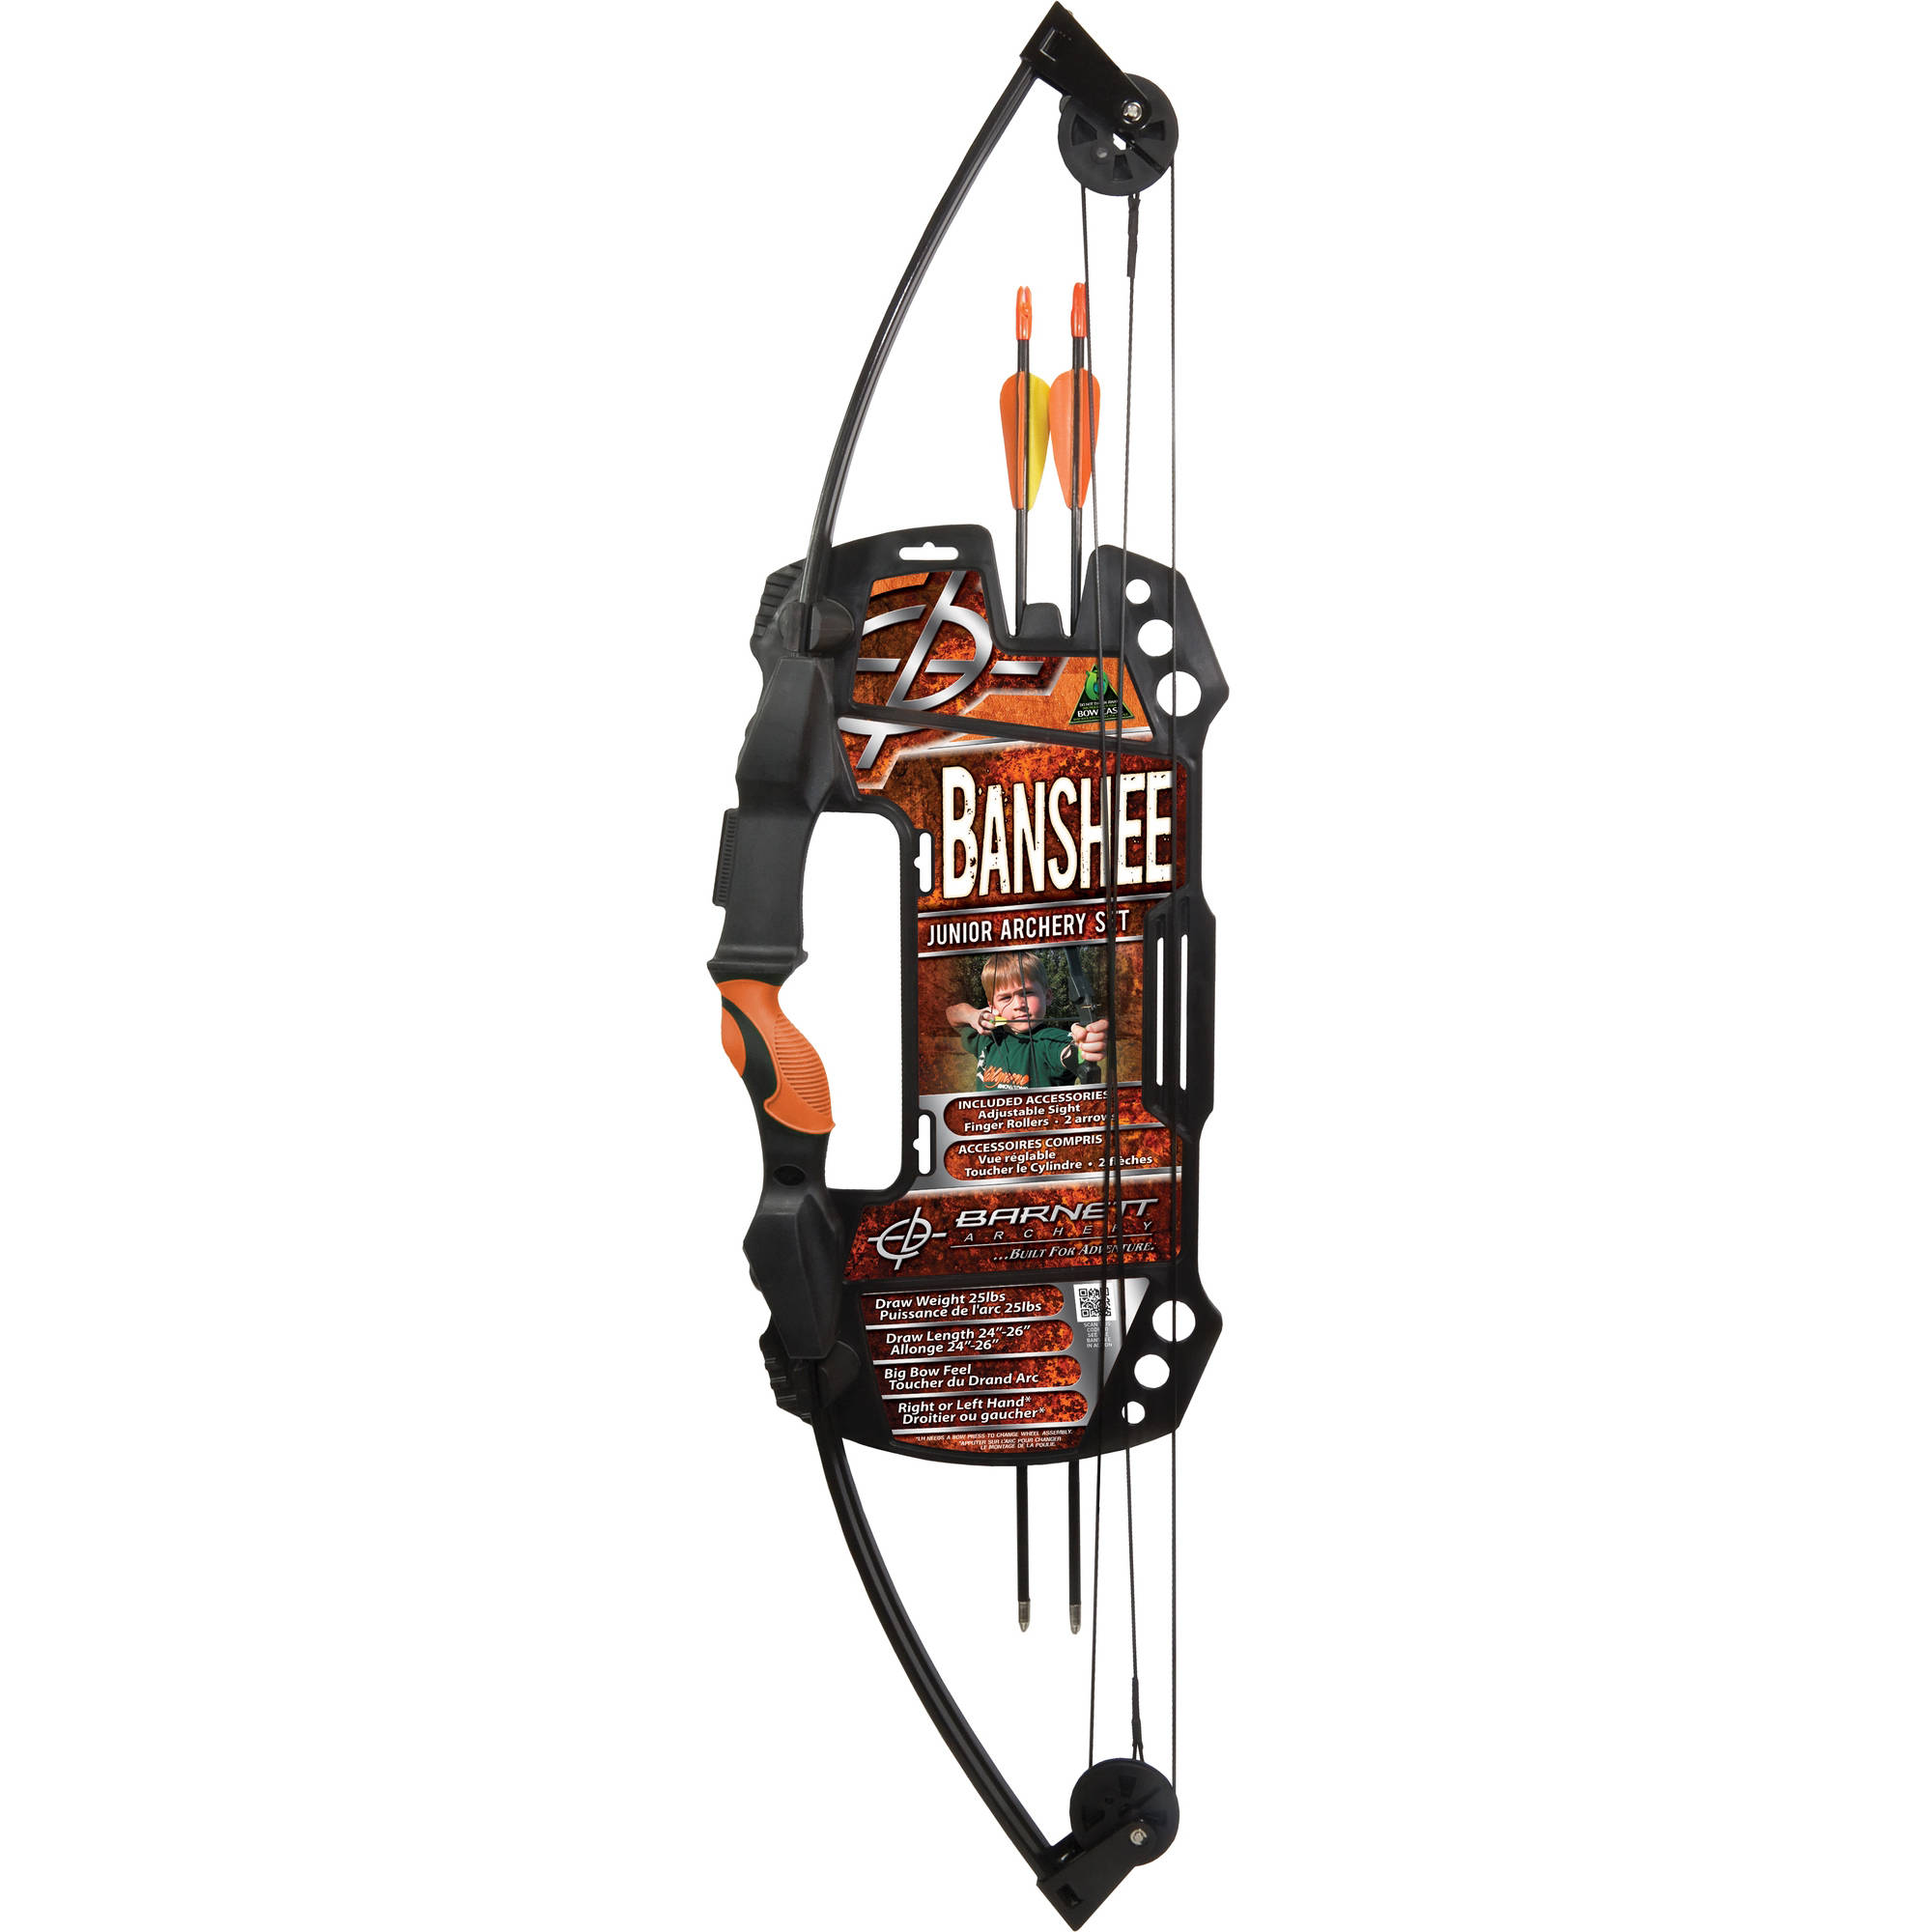 Barnett Sports & Outdoors Lil' Banshee Junior Compound Bow Archery Set